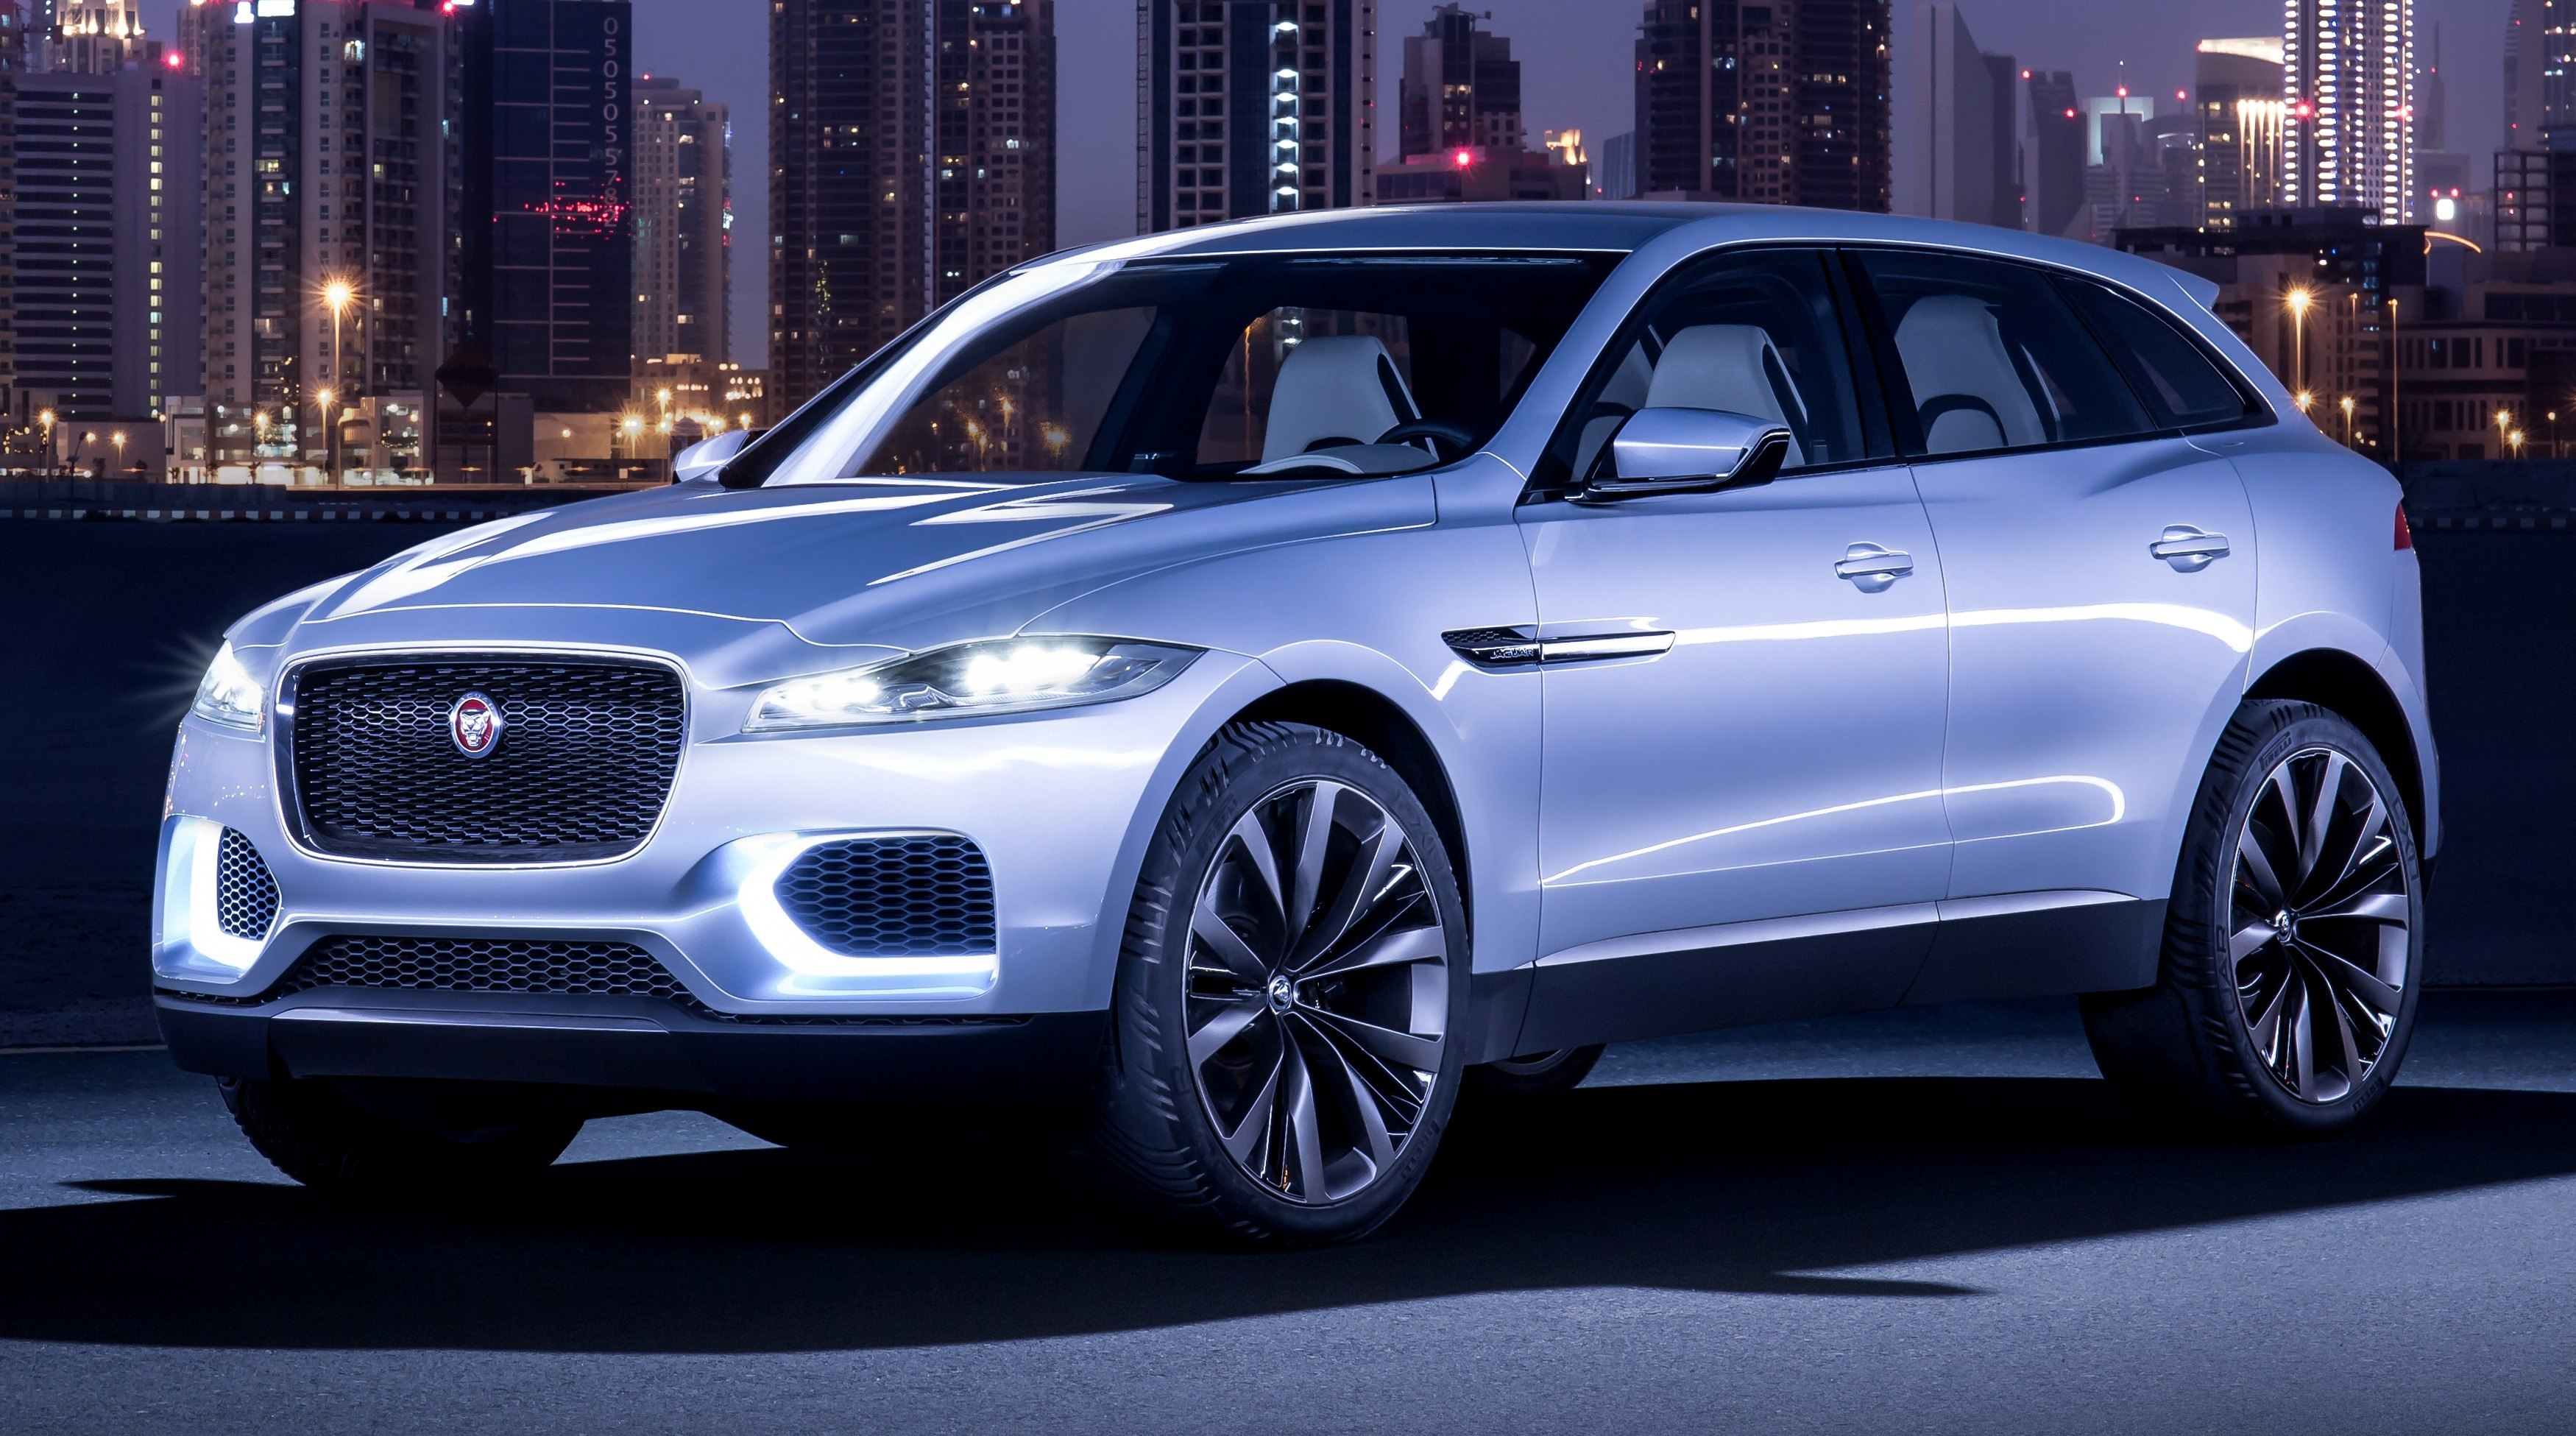 2016 Jaguar Xq Type Preview C X17 Suv In 150 Photos 4 Colors 65